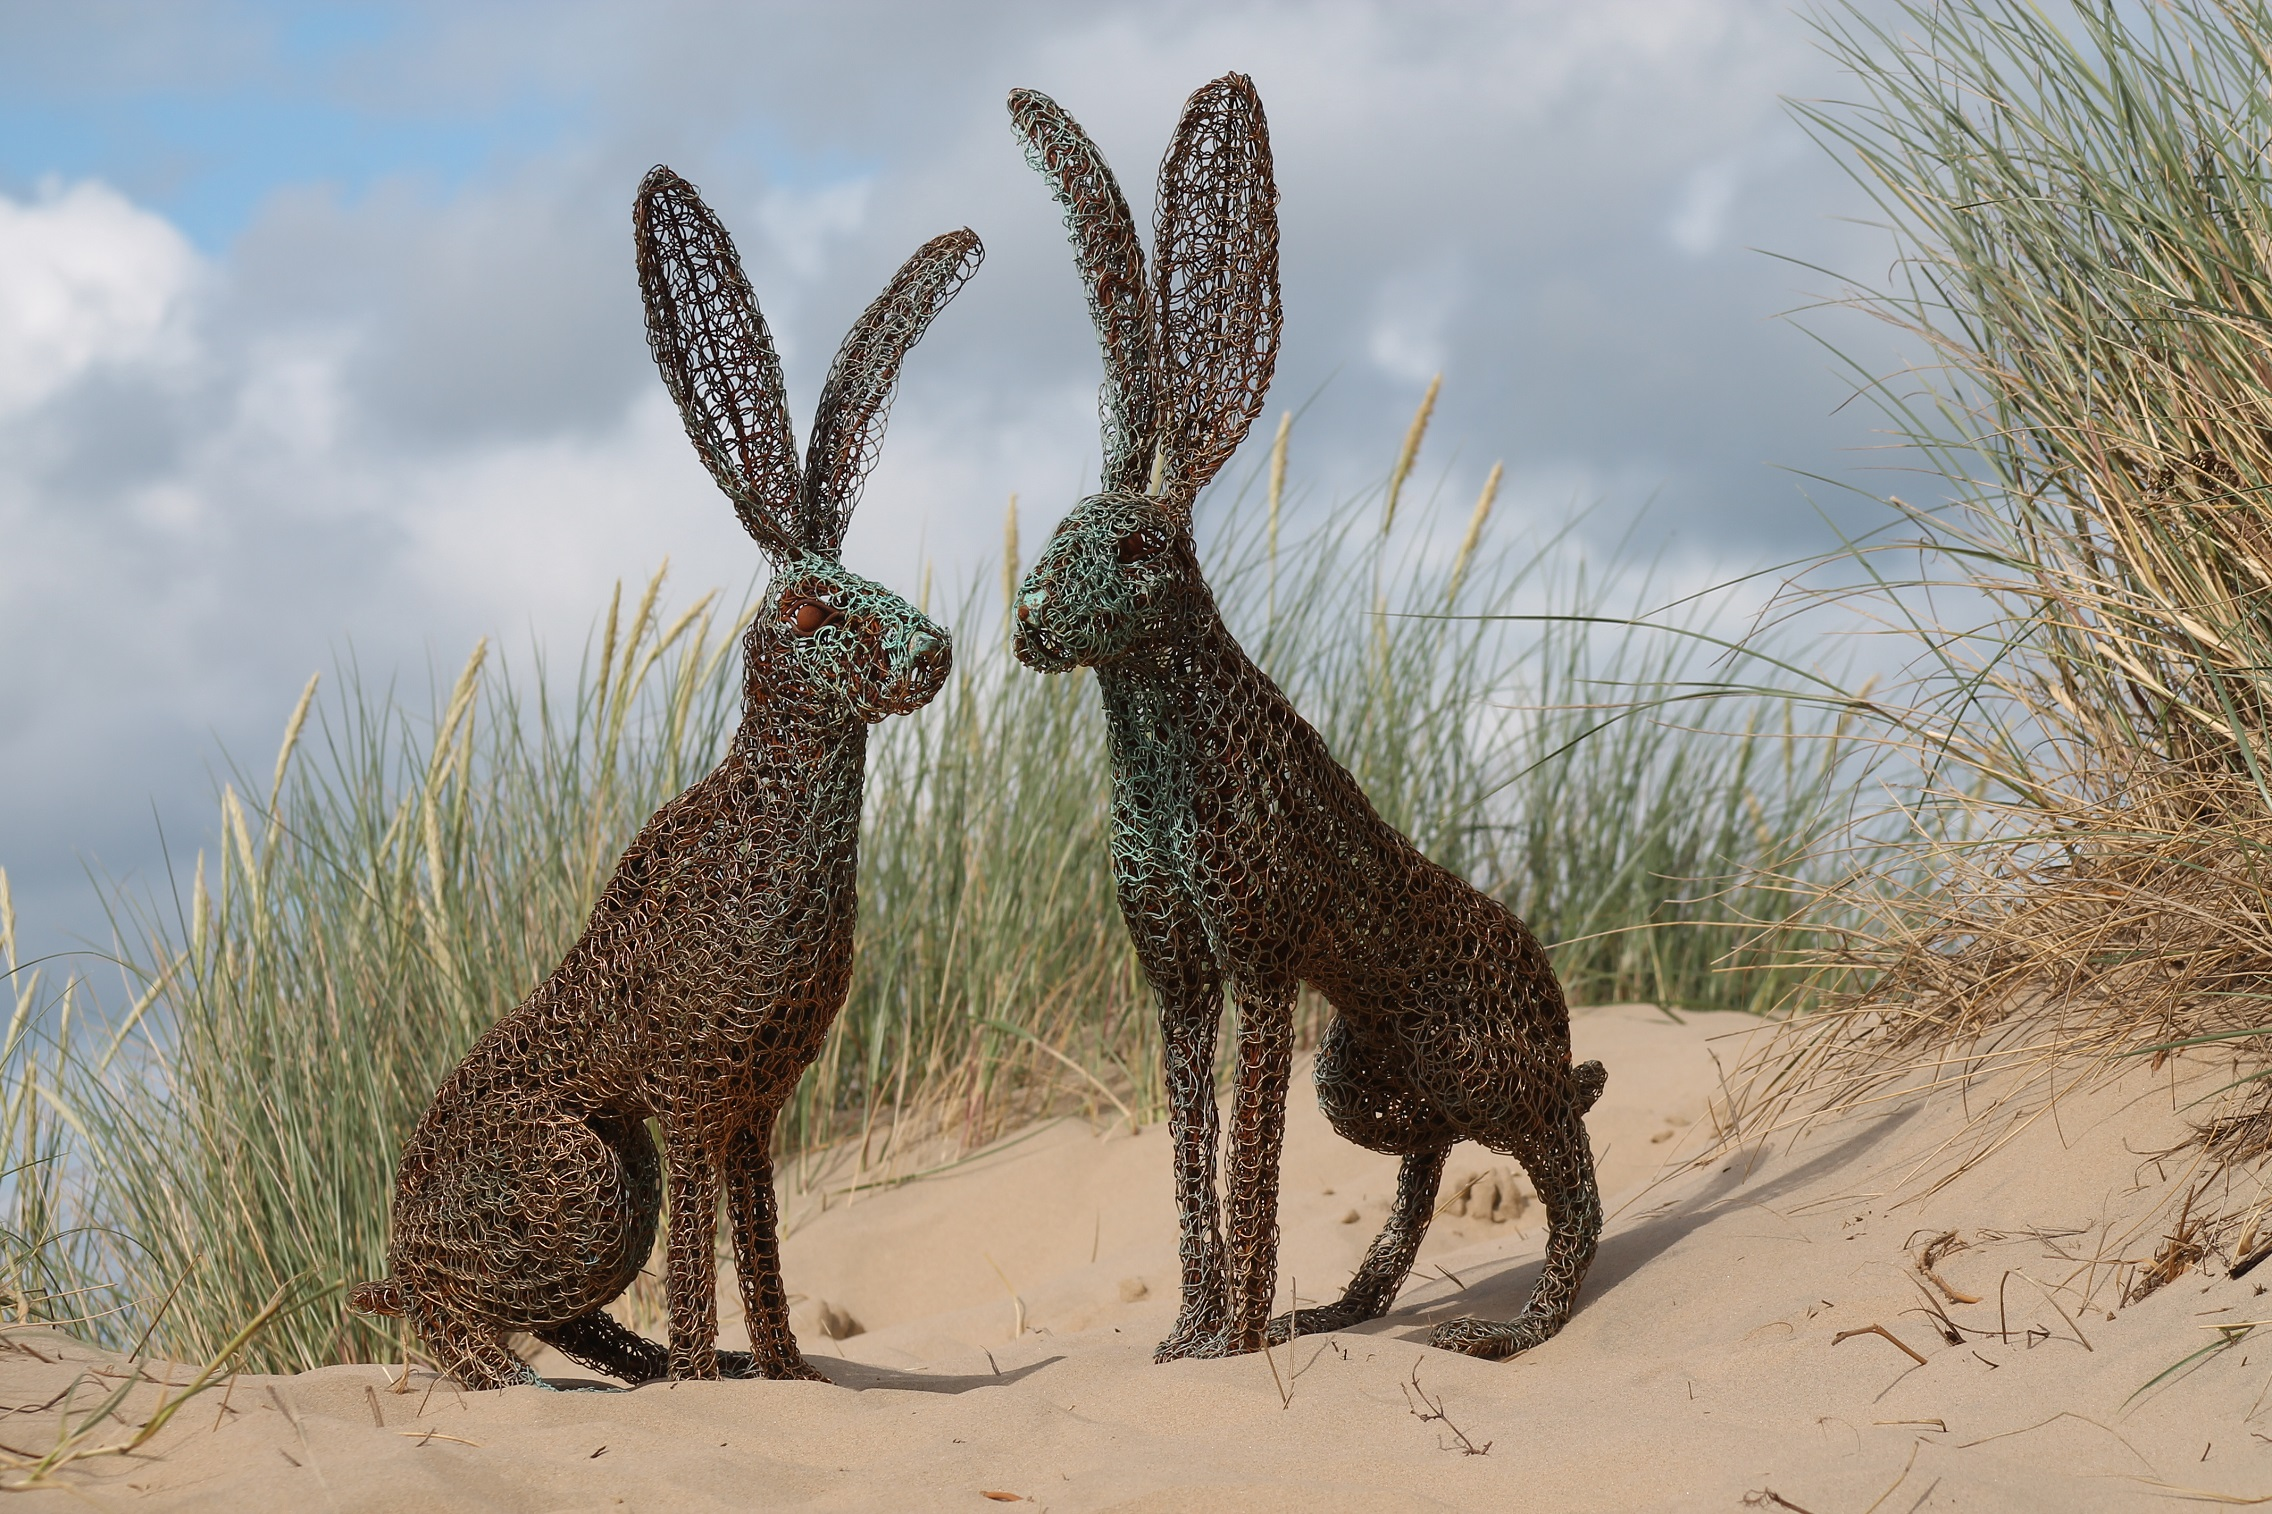 kissing hares together 2.jpg